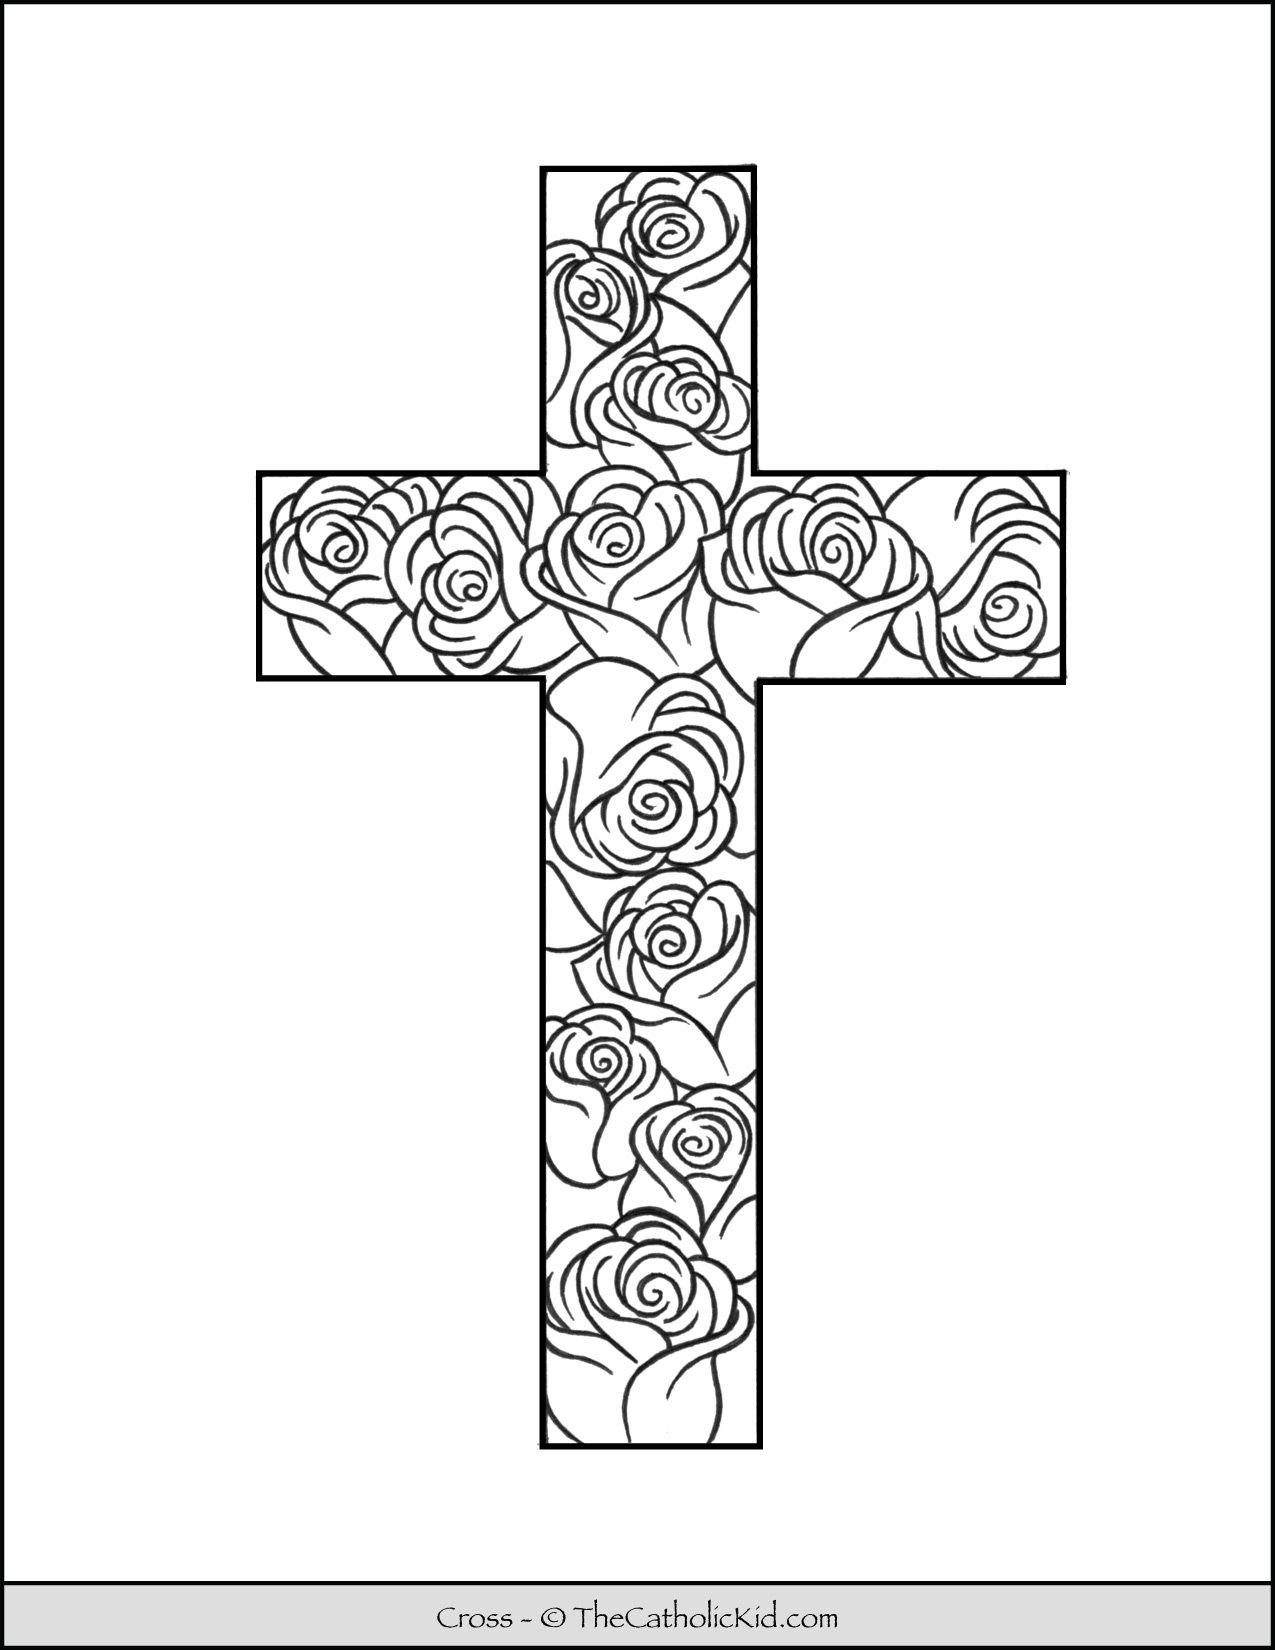 Pin on Catholic Church Coloring Pages